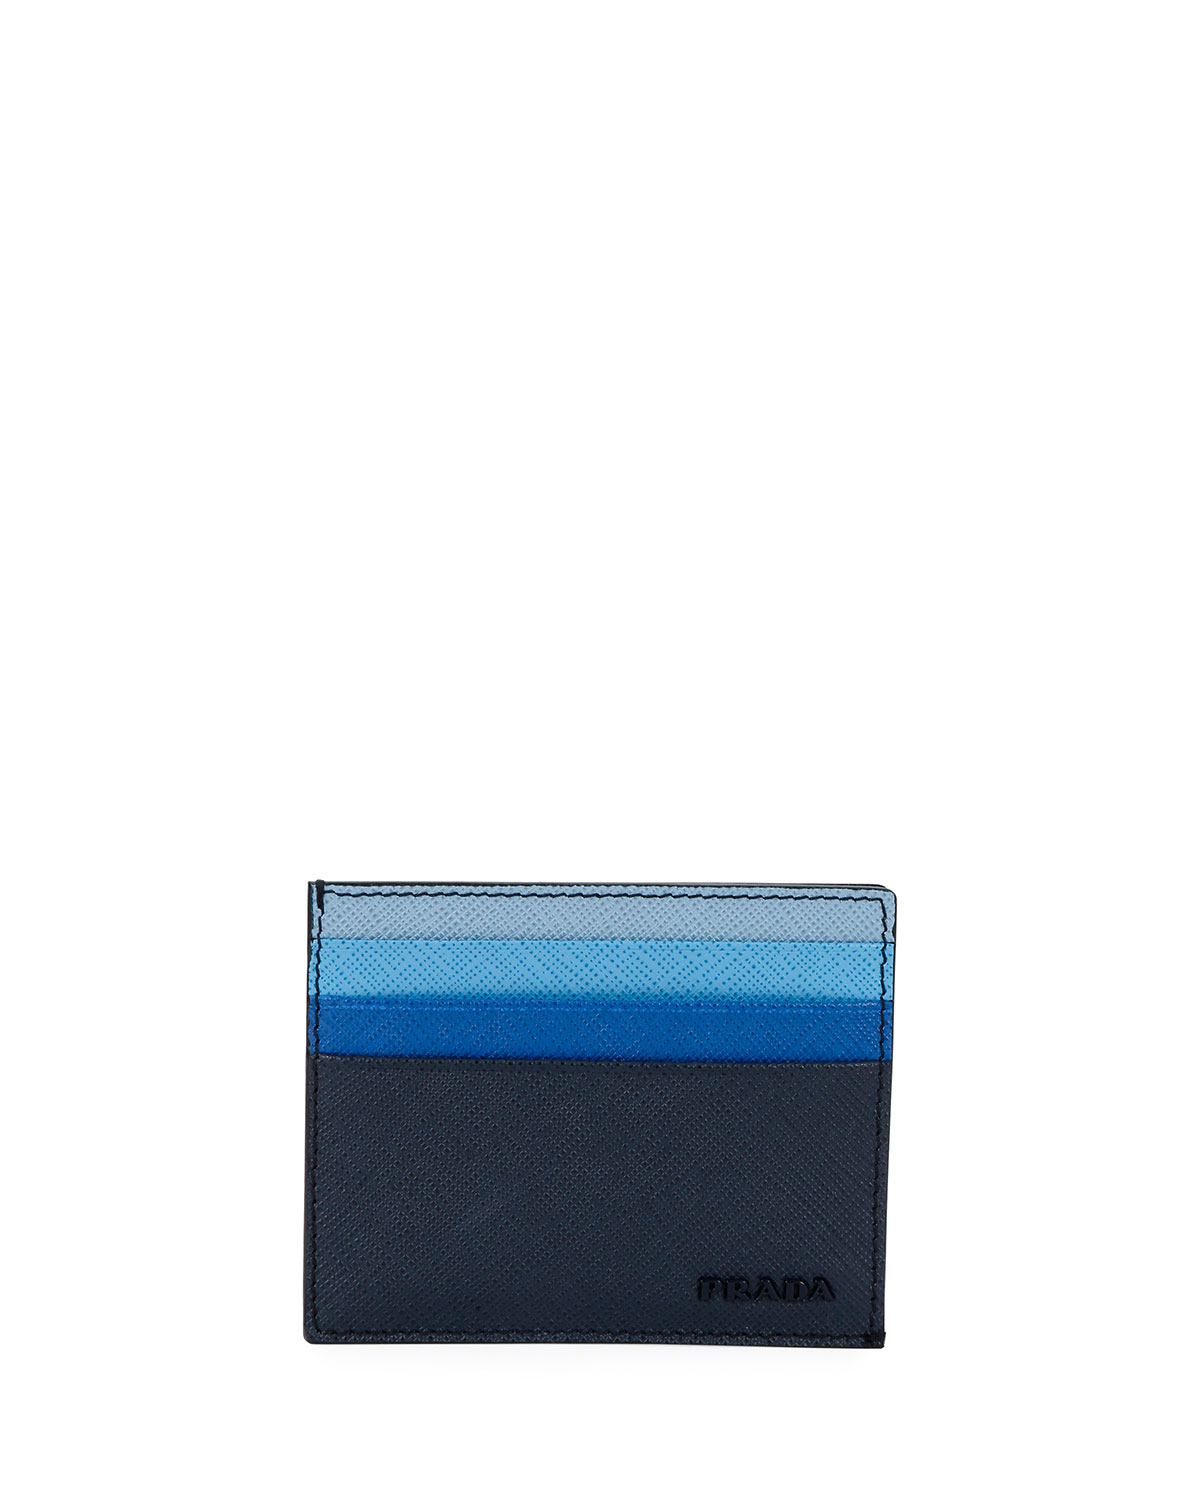 Leather Saffiano Card Case | Neiman Marcus